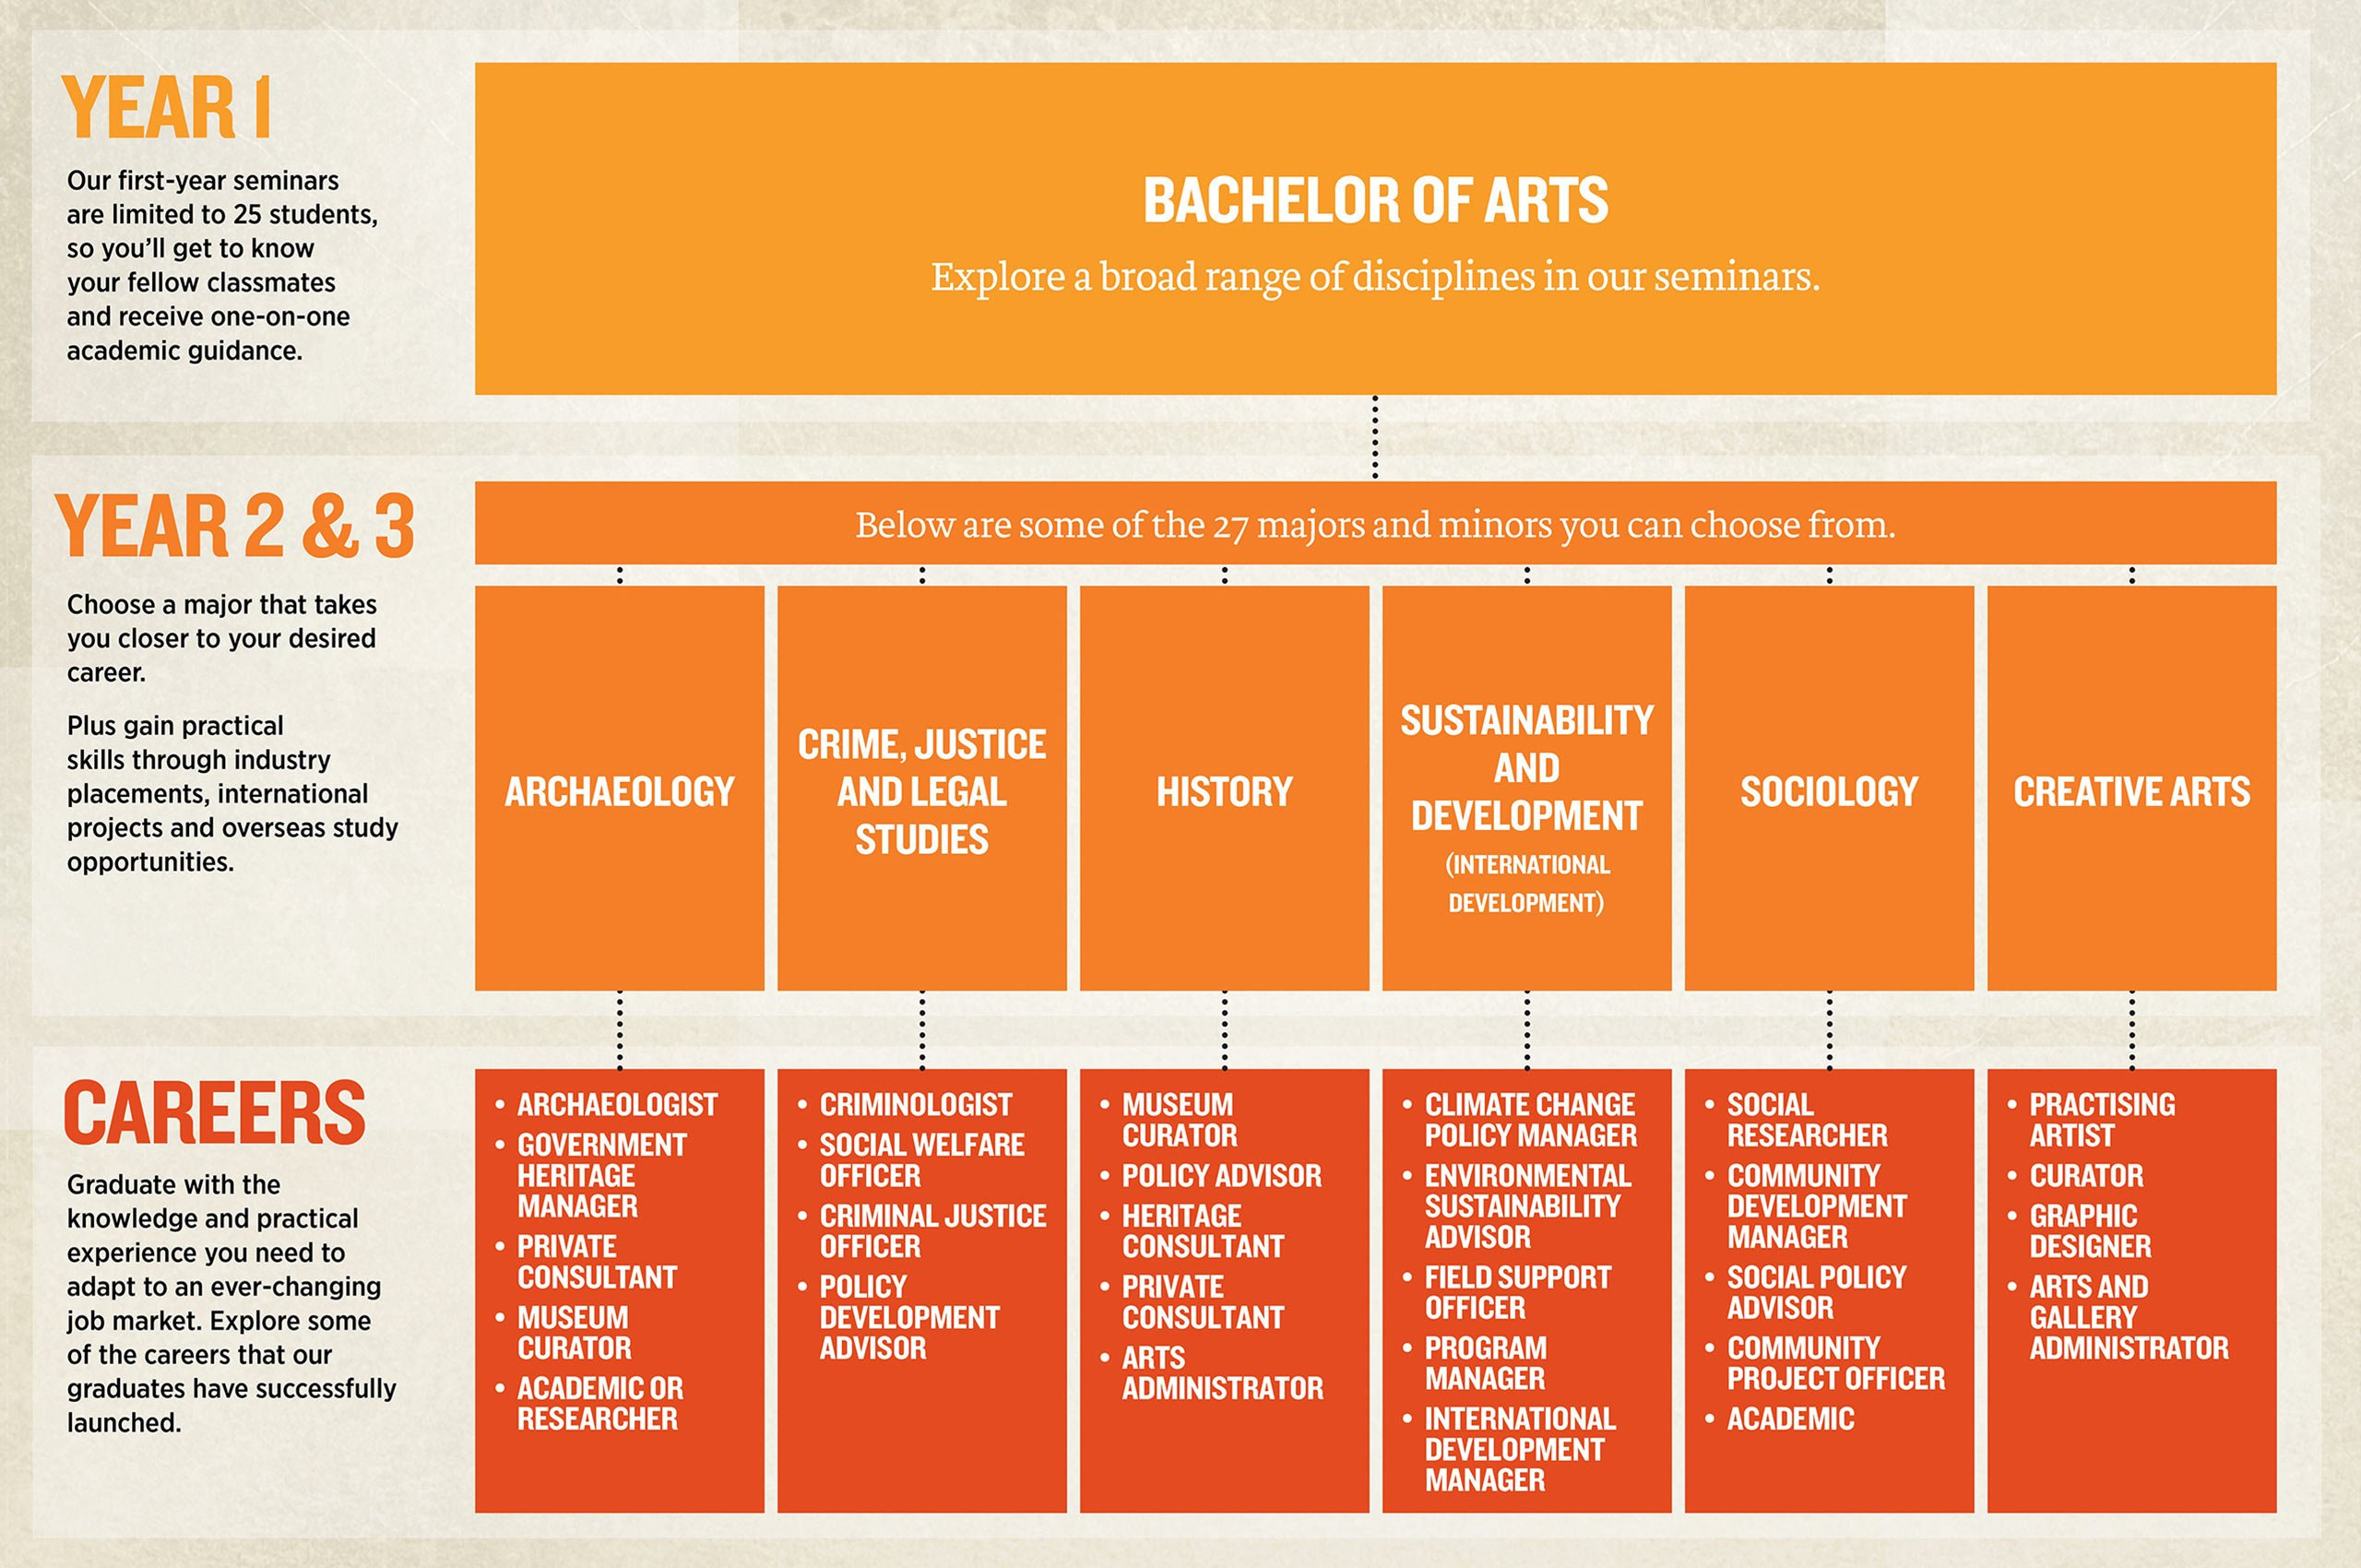 What exactly do u study in the bachelor of arts (media and communications)?